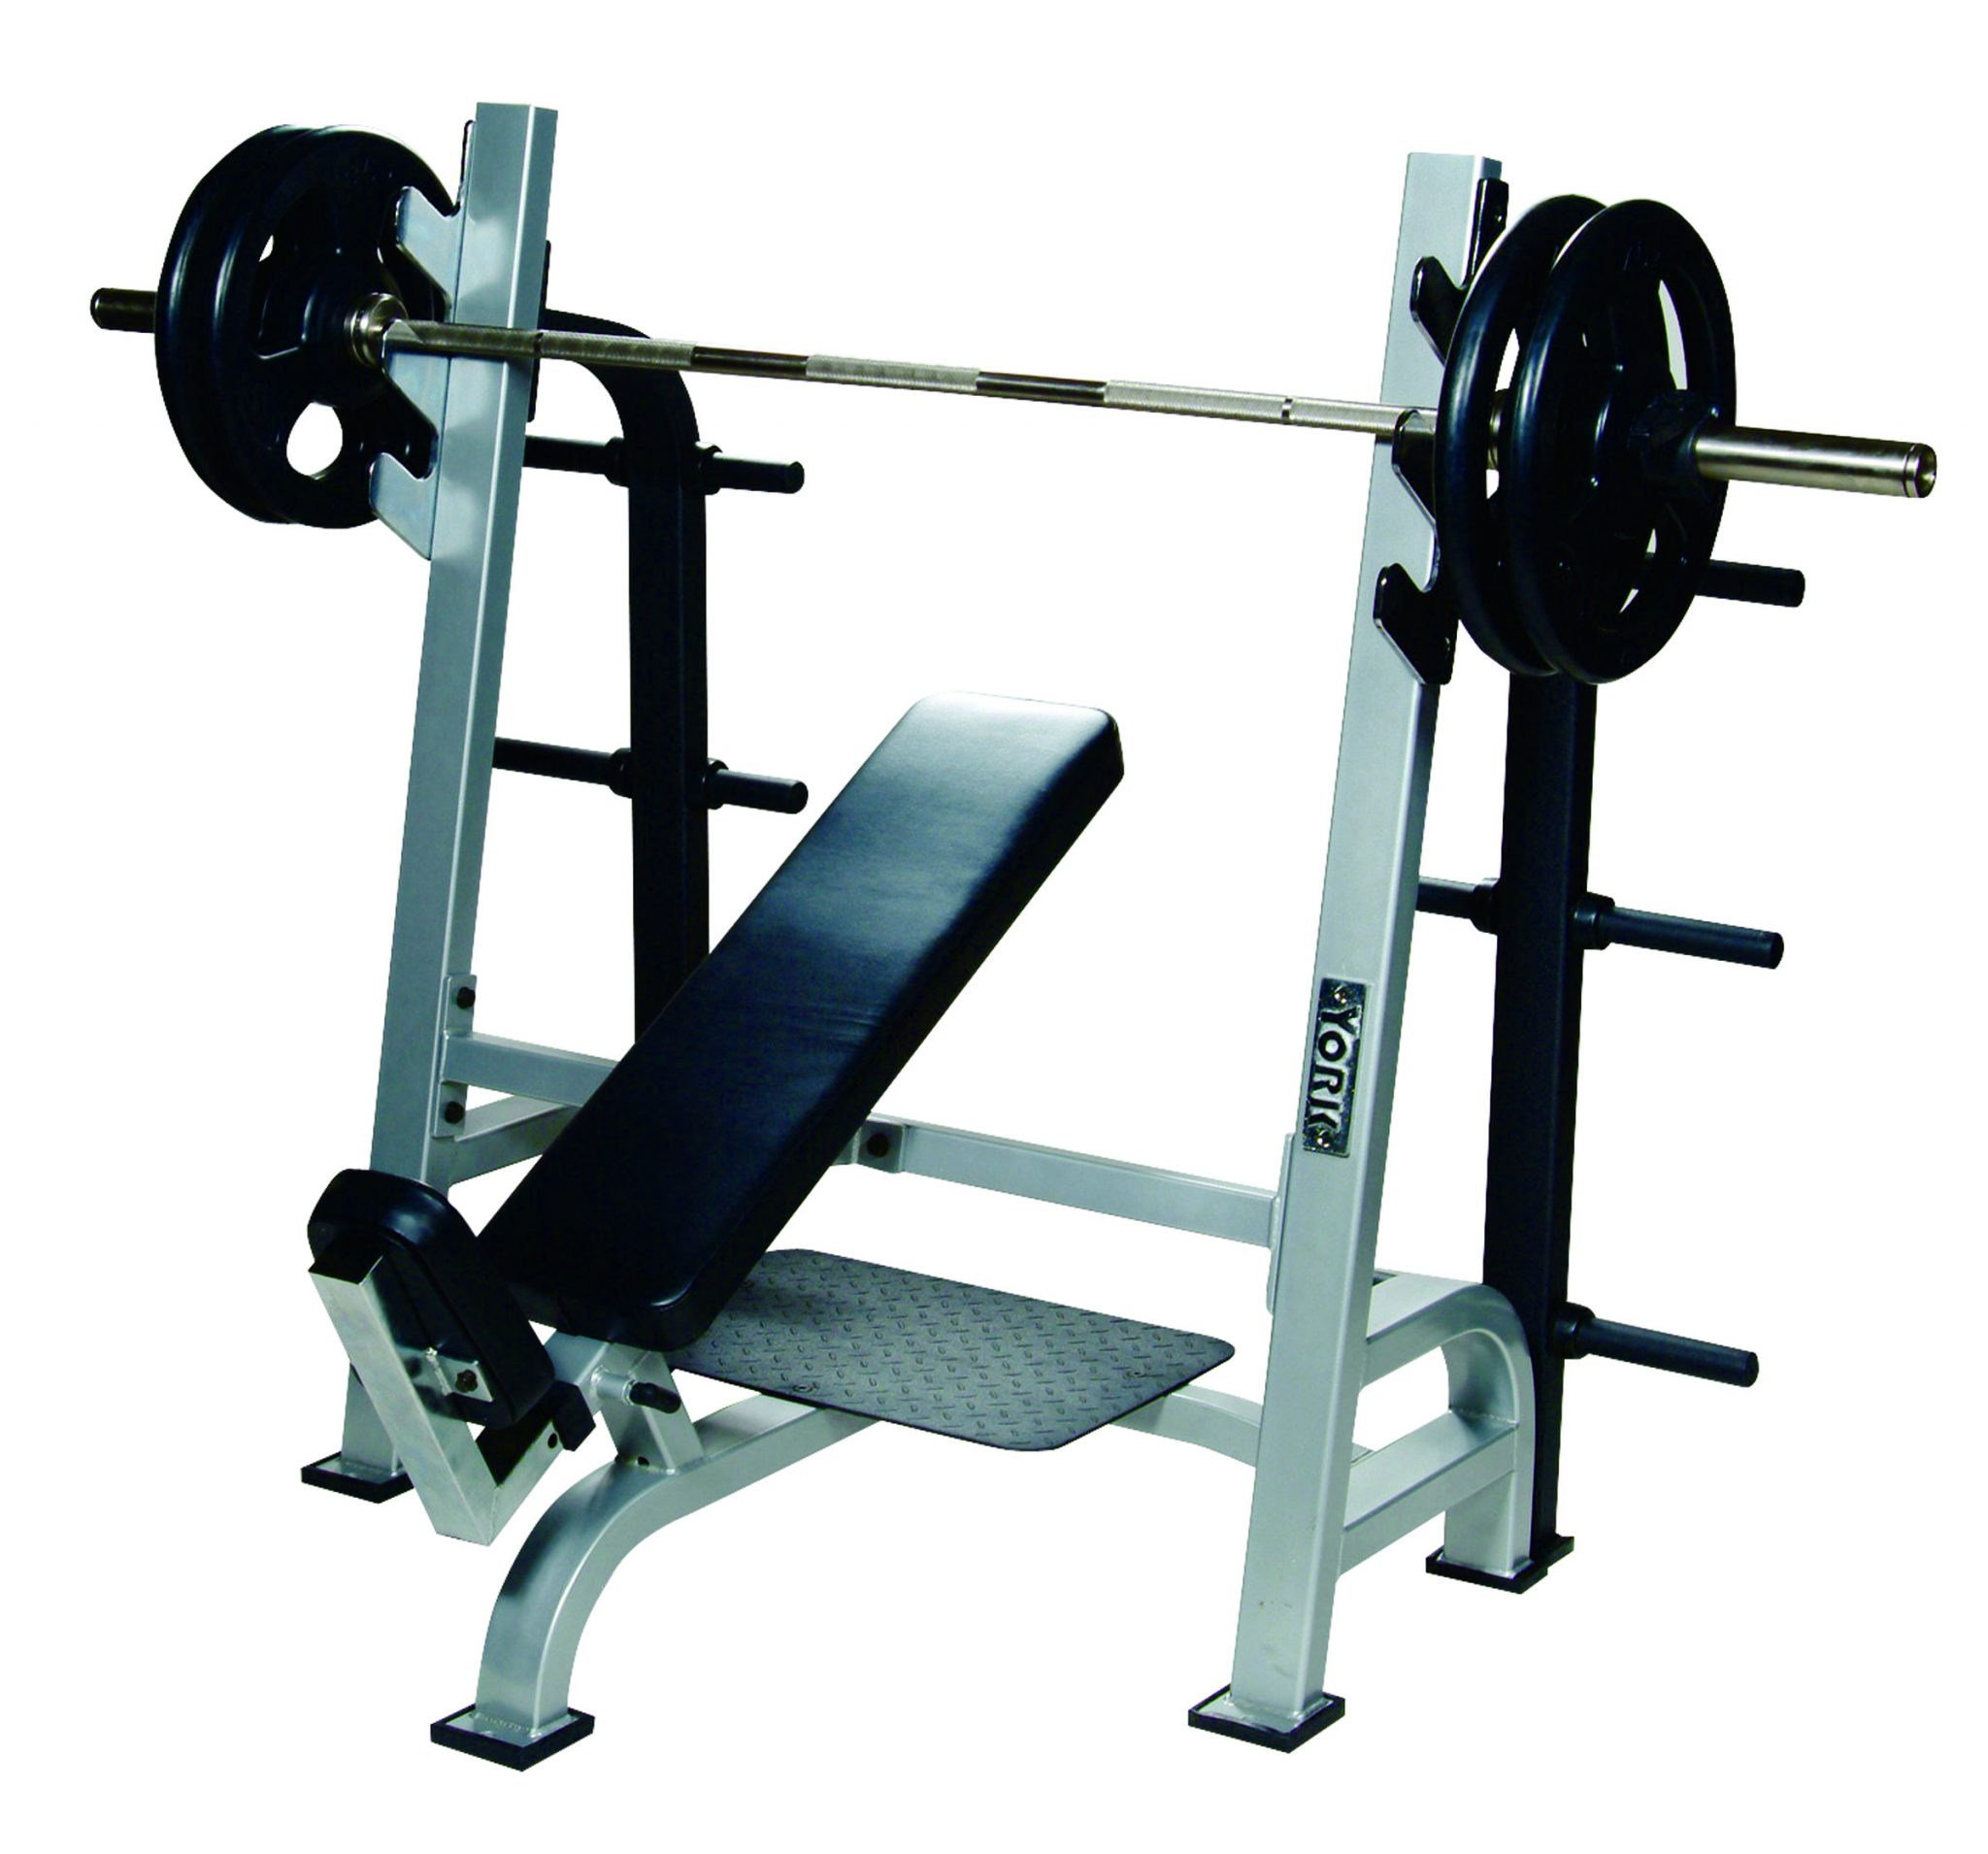 Press Bench Equipment 28 Images Kustom Kit Insignia Bench Press V3 Infinity Gym Equipment